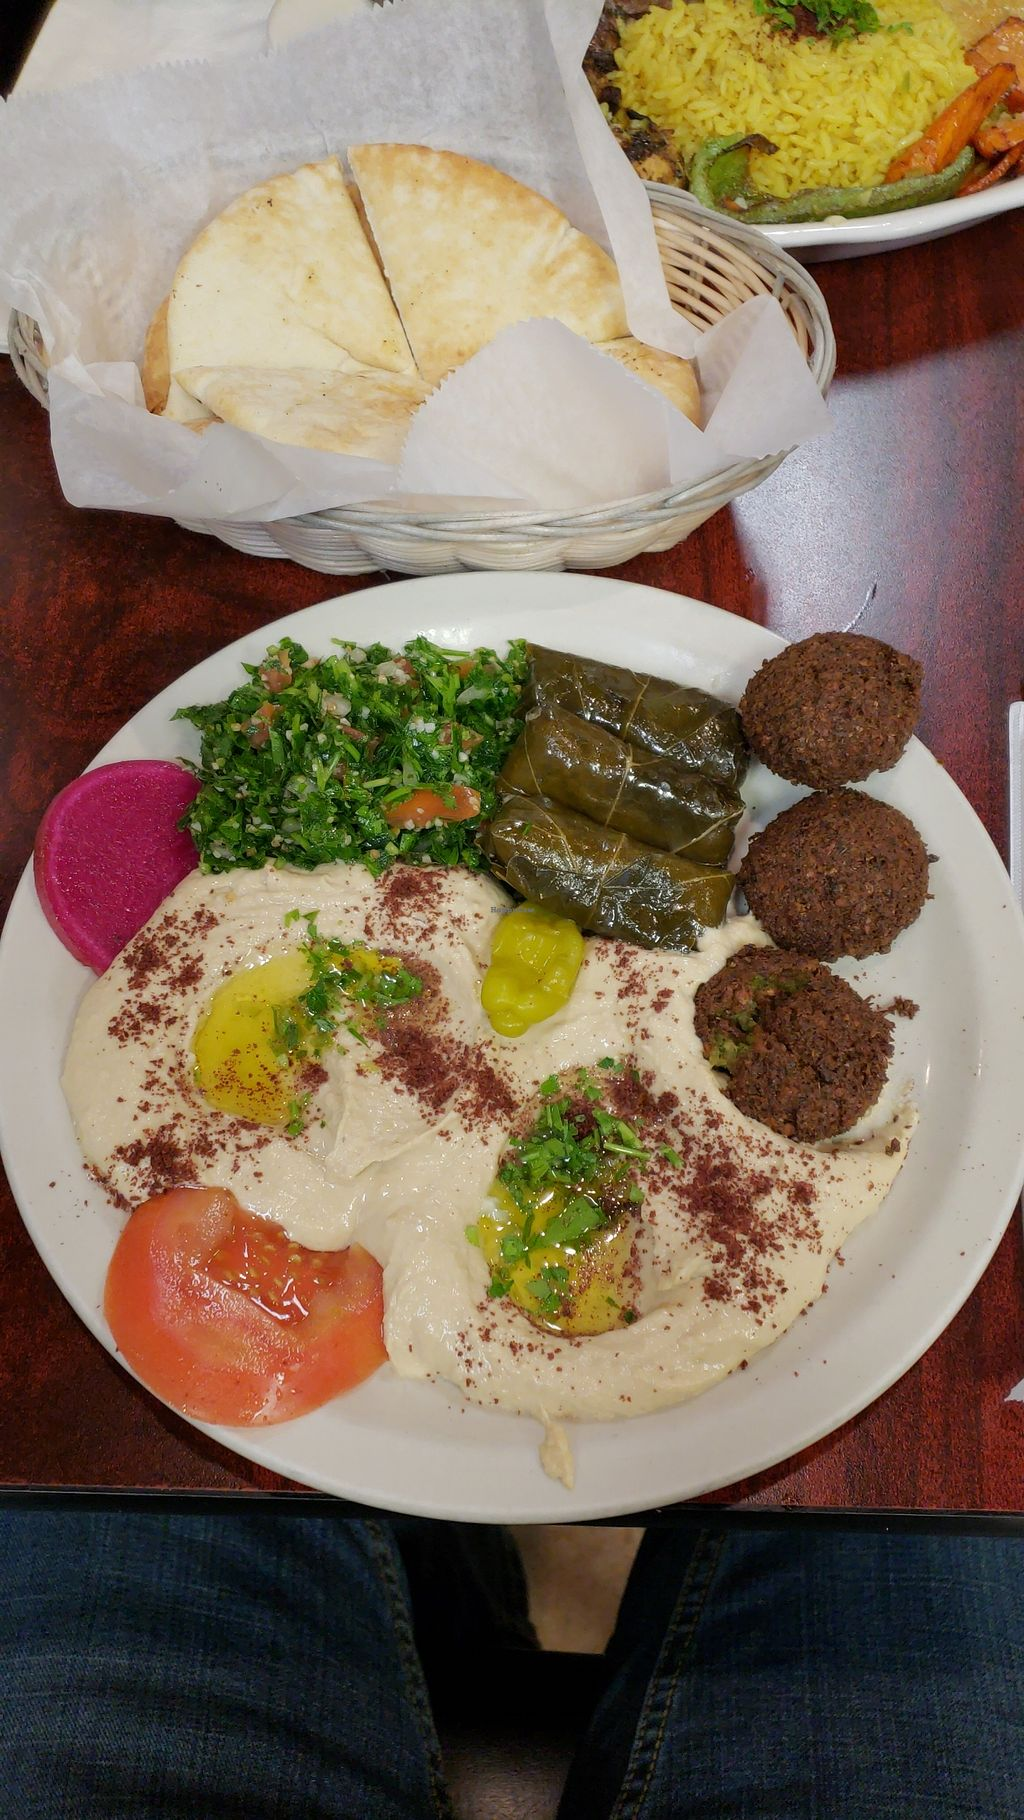 Vegetarian Platter With Hummus Subsute At King O Falafel In Kissimmee